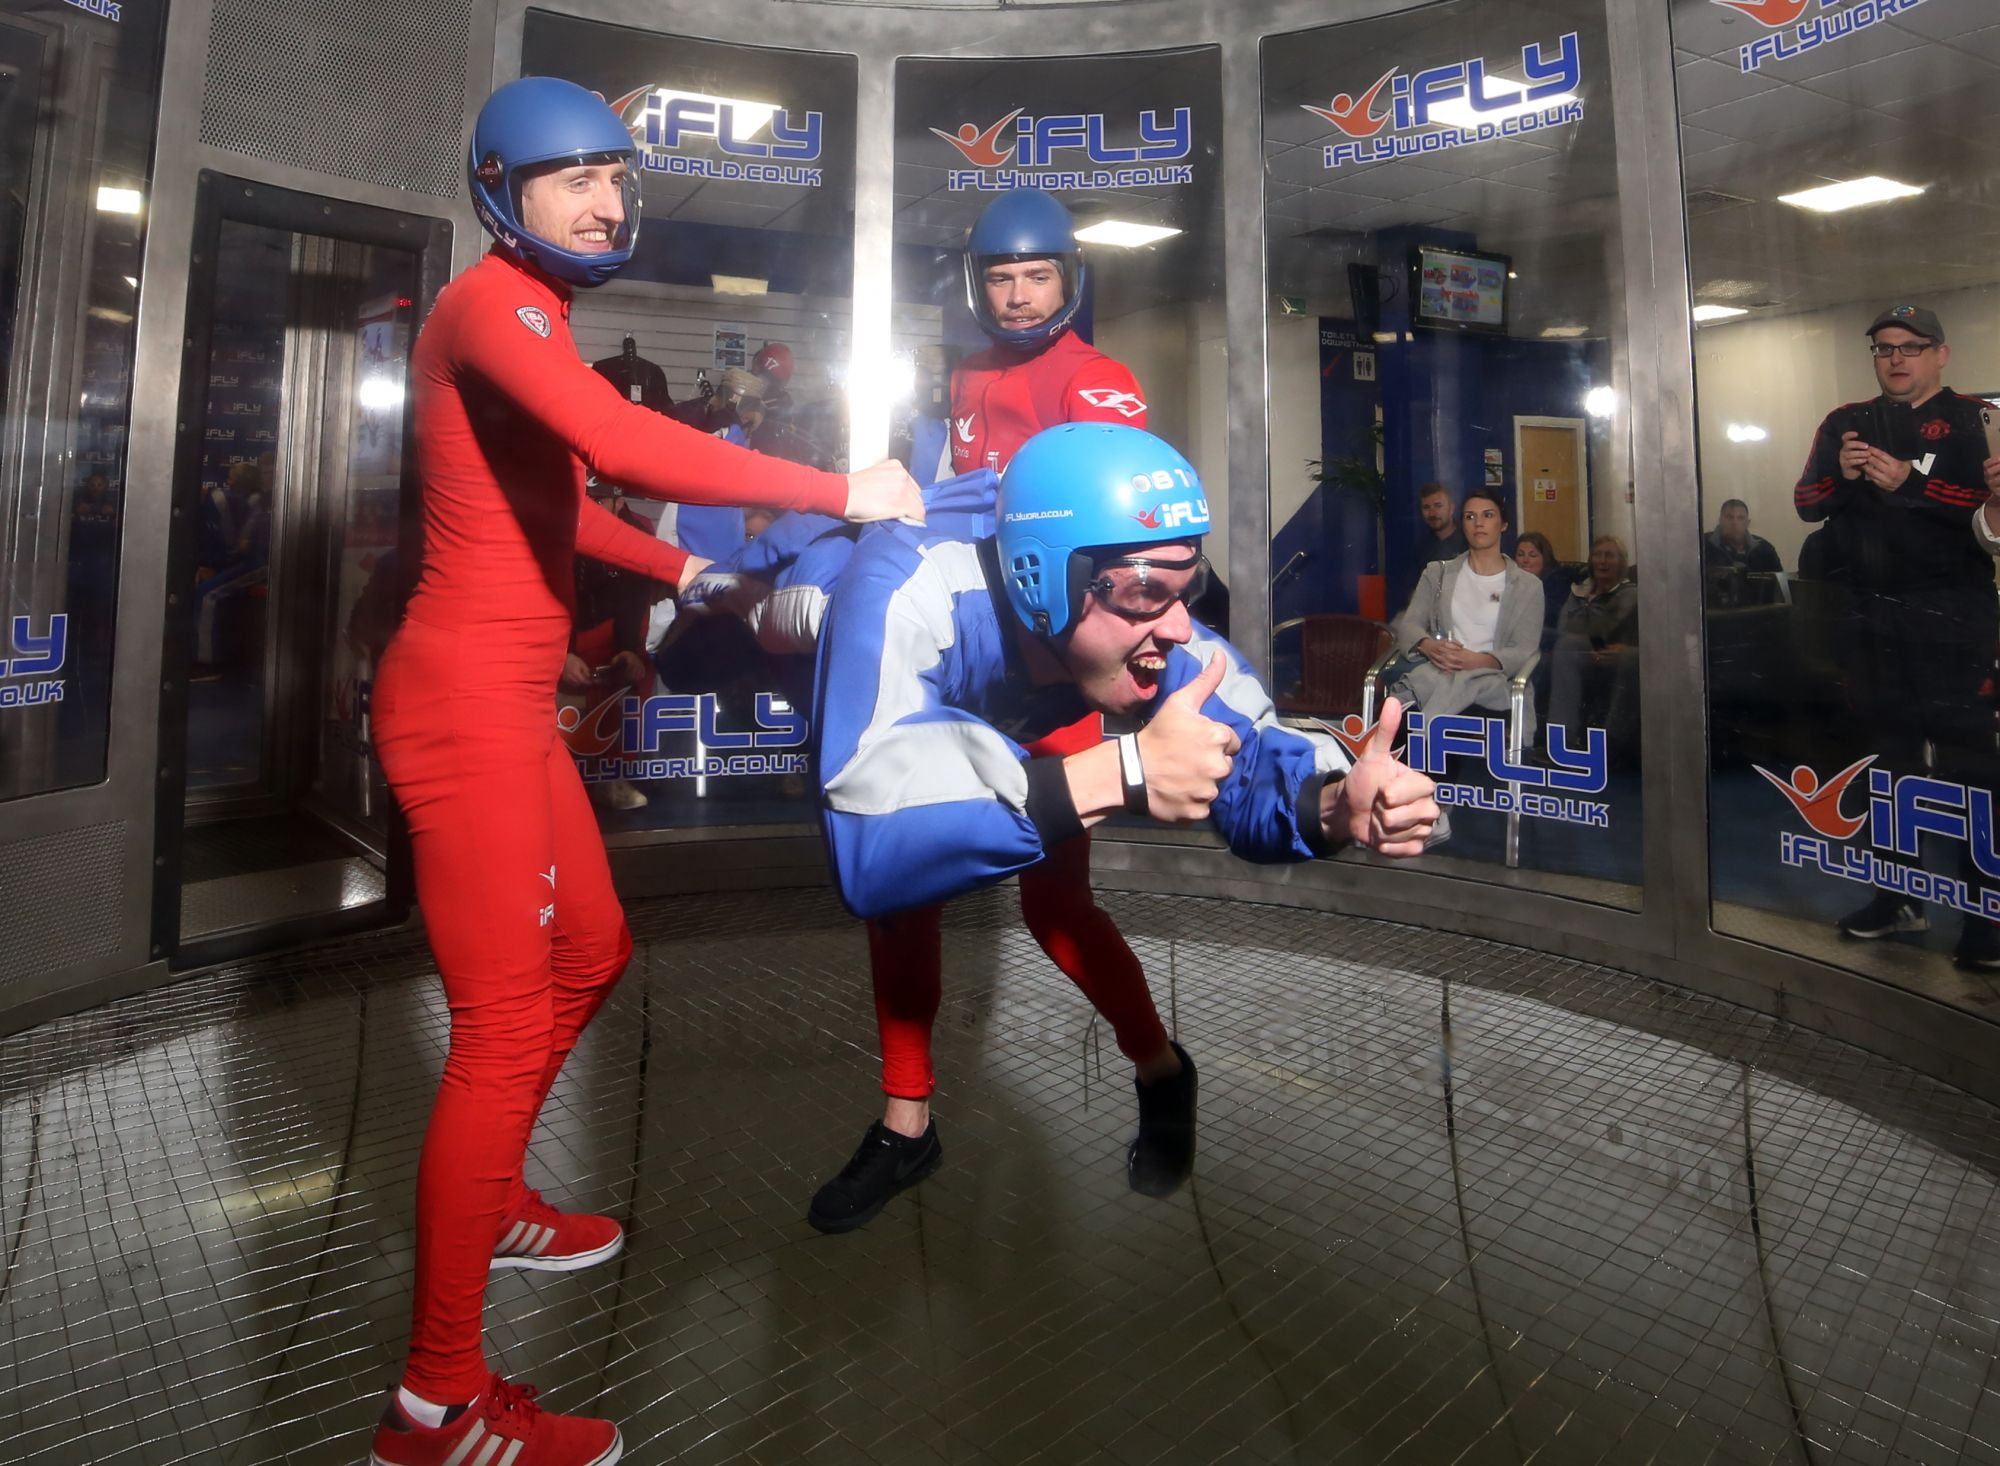 Fantastic Indoor Skydiving at iFly!